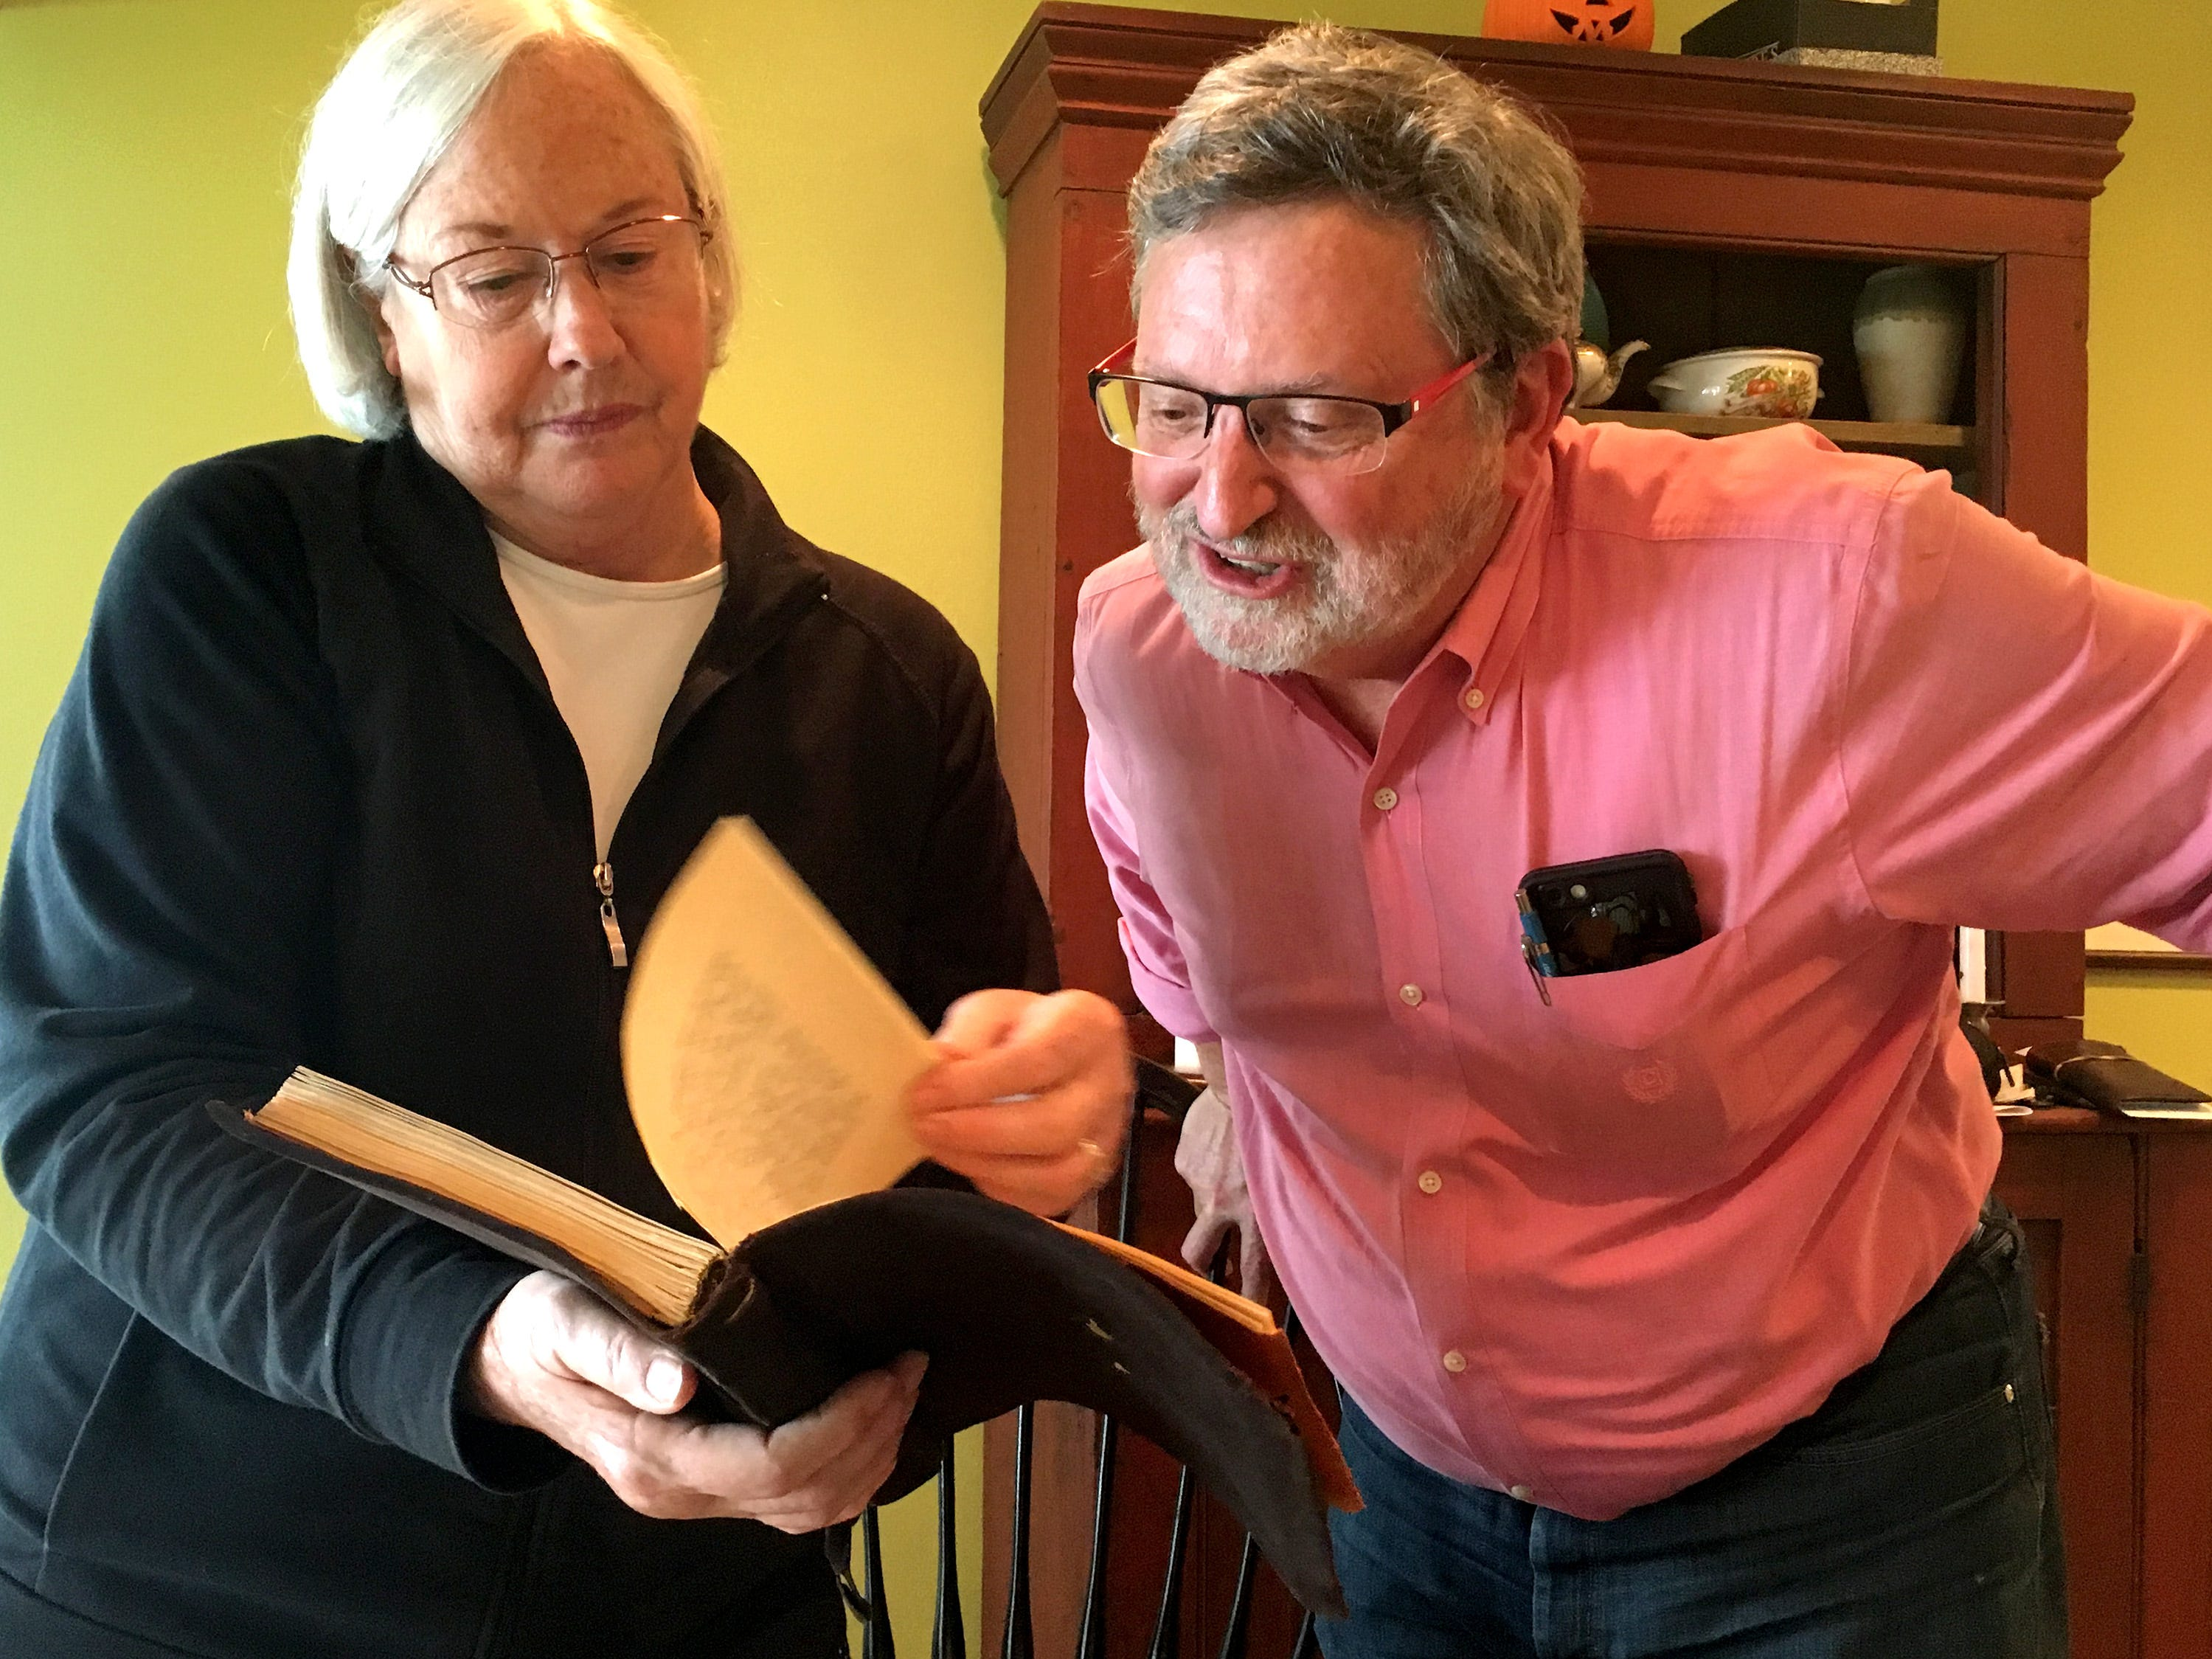 Janet Bode shows her brother John Schlosser a journal of their uncle Harold Reilly's transcribed letters from training and France that she uncovered with a photo album several years ago, neither of which Schlosser had ever seen before.